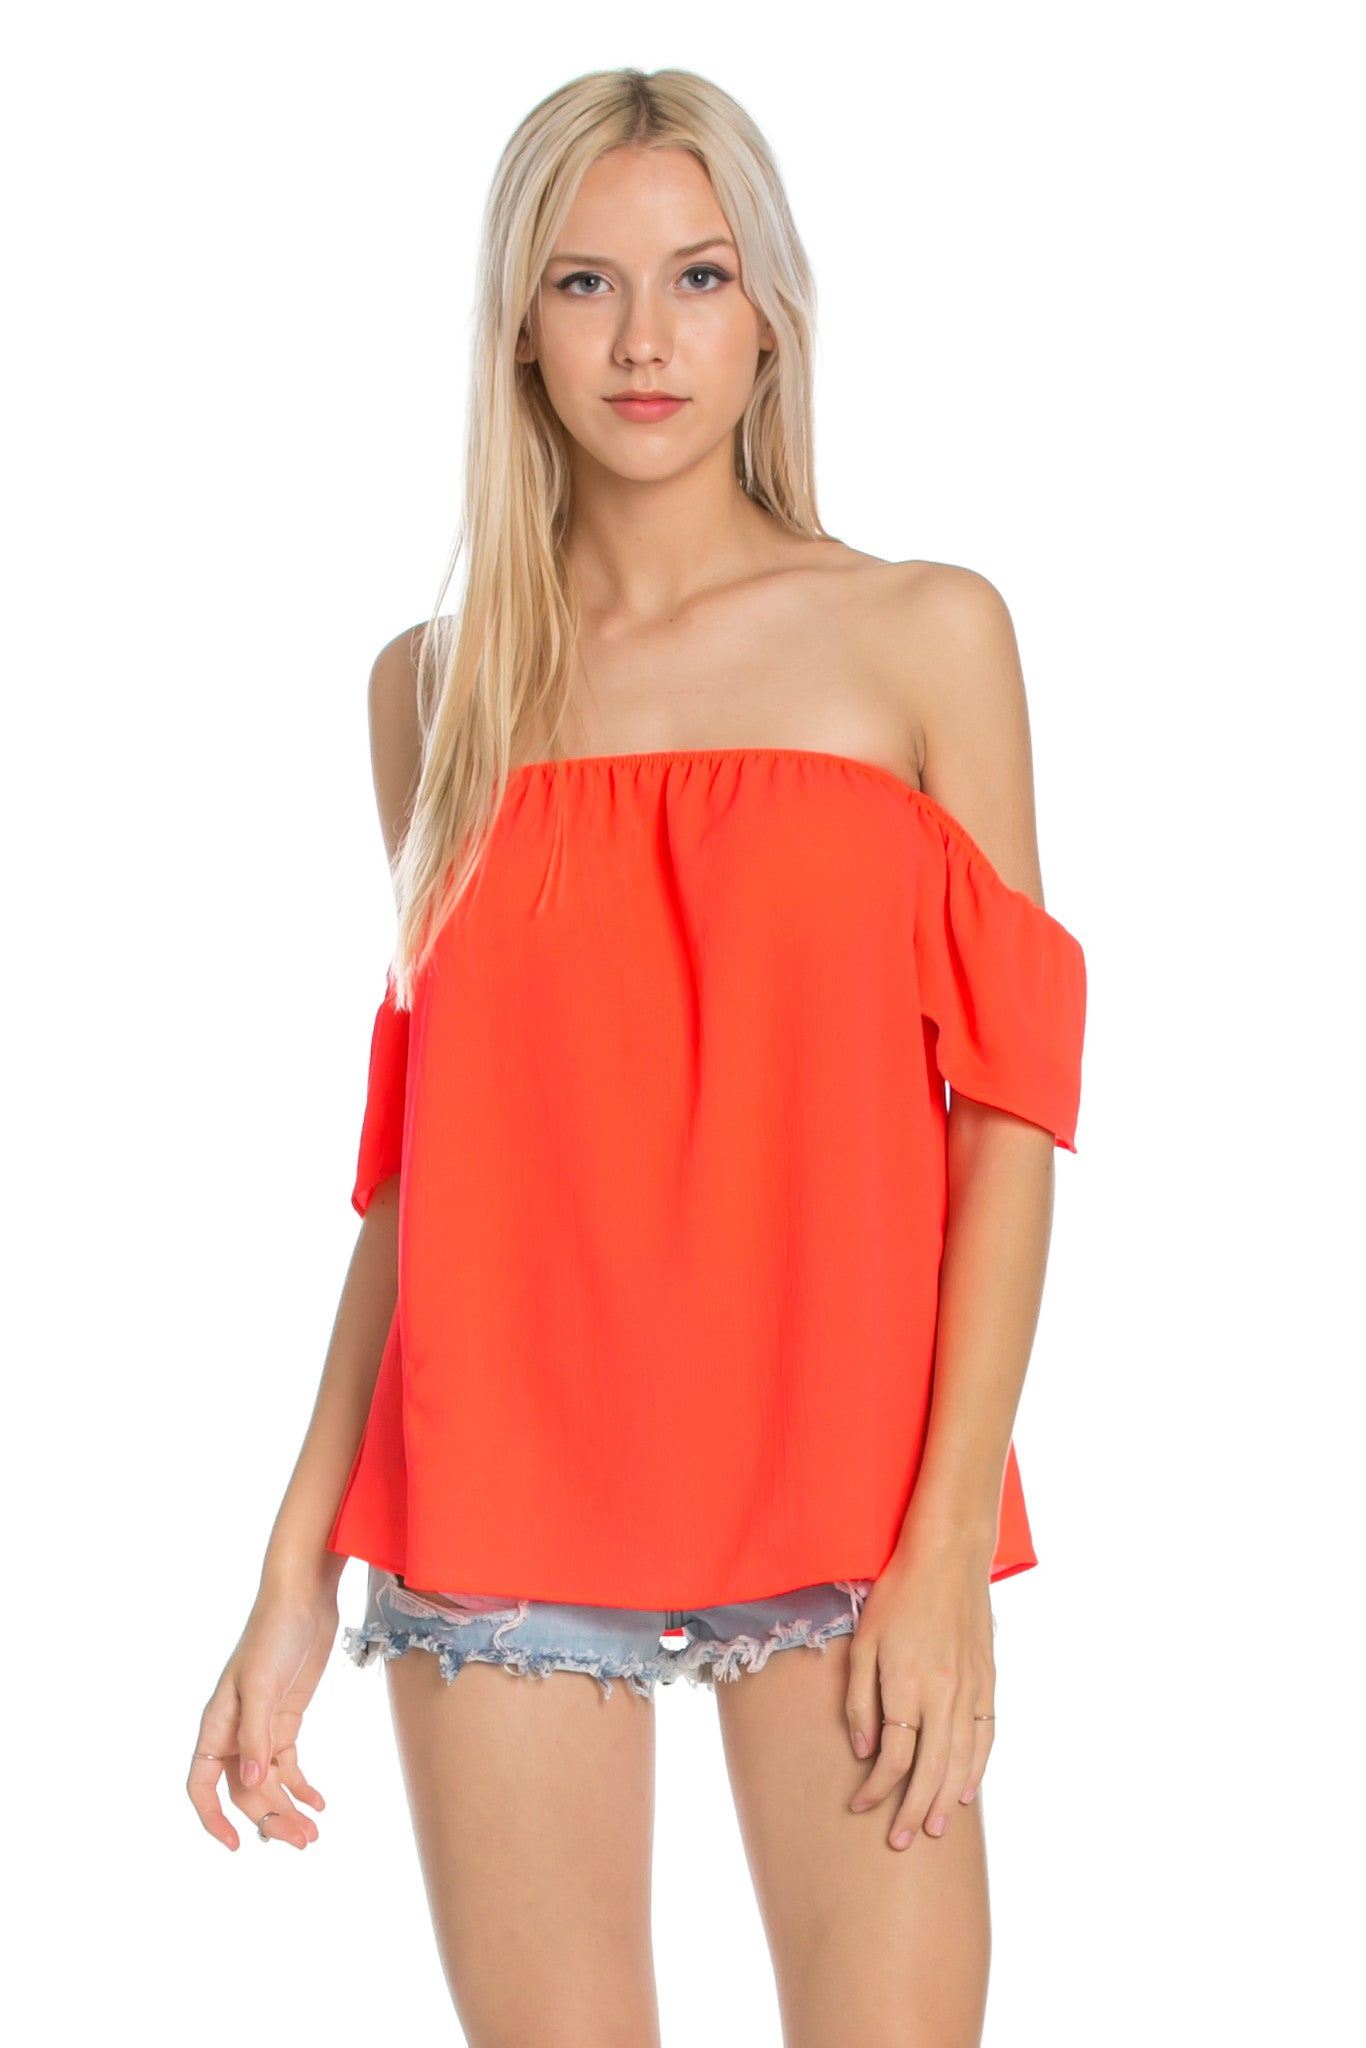 Short Sleeve Off the Shoulder Flowy Coral Top - Tops - My Yuccie - 1